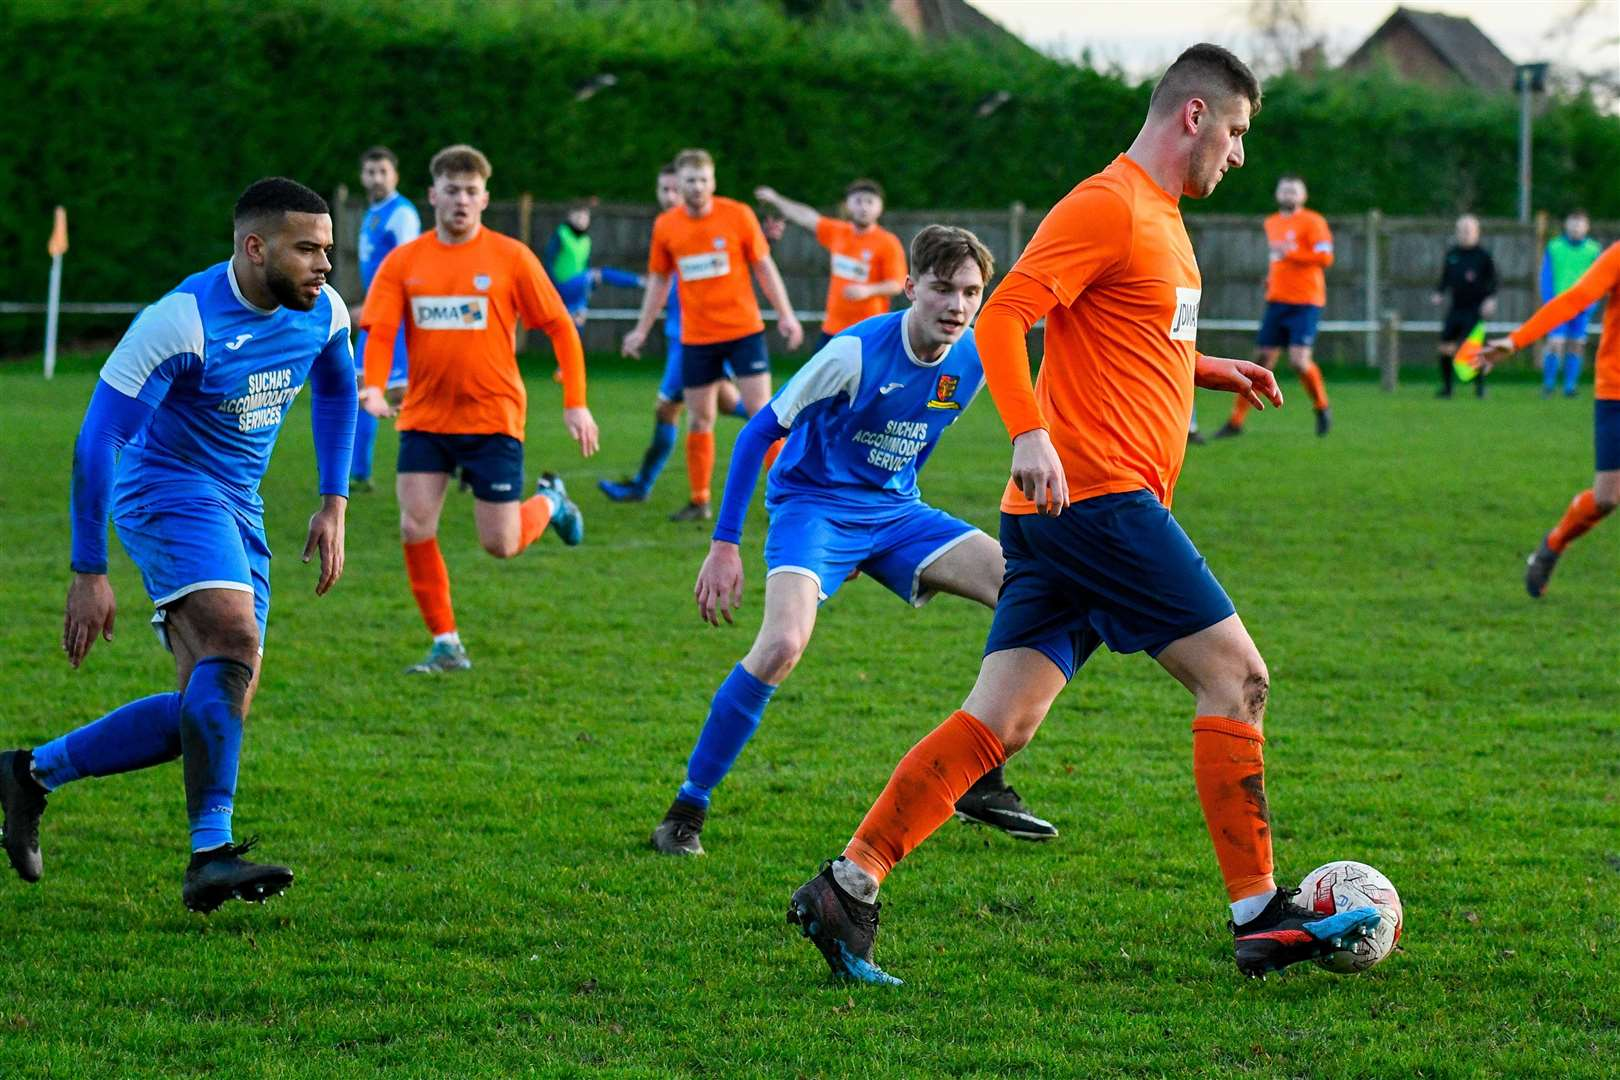 04/01/2020. Diss, UK. Football action from Diss Town v Ipswich Wanderers - Ryan Fuller..Photo by Mark Bullimore. (25911544)